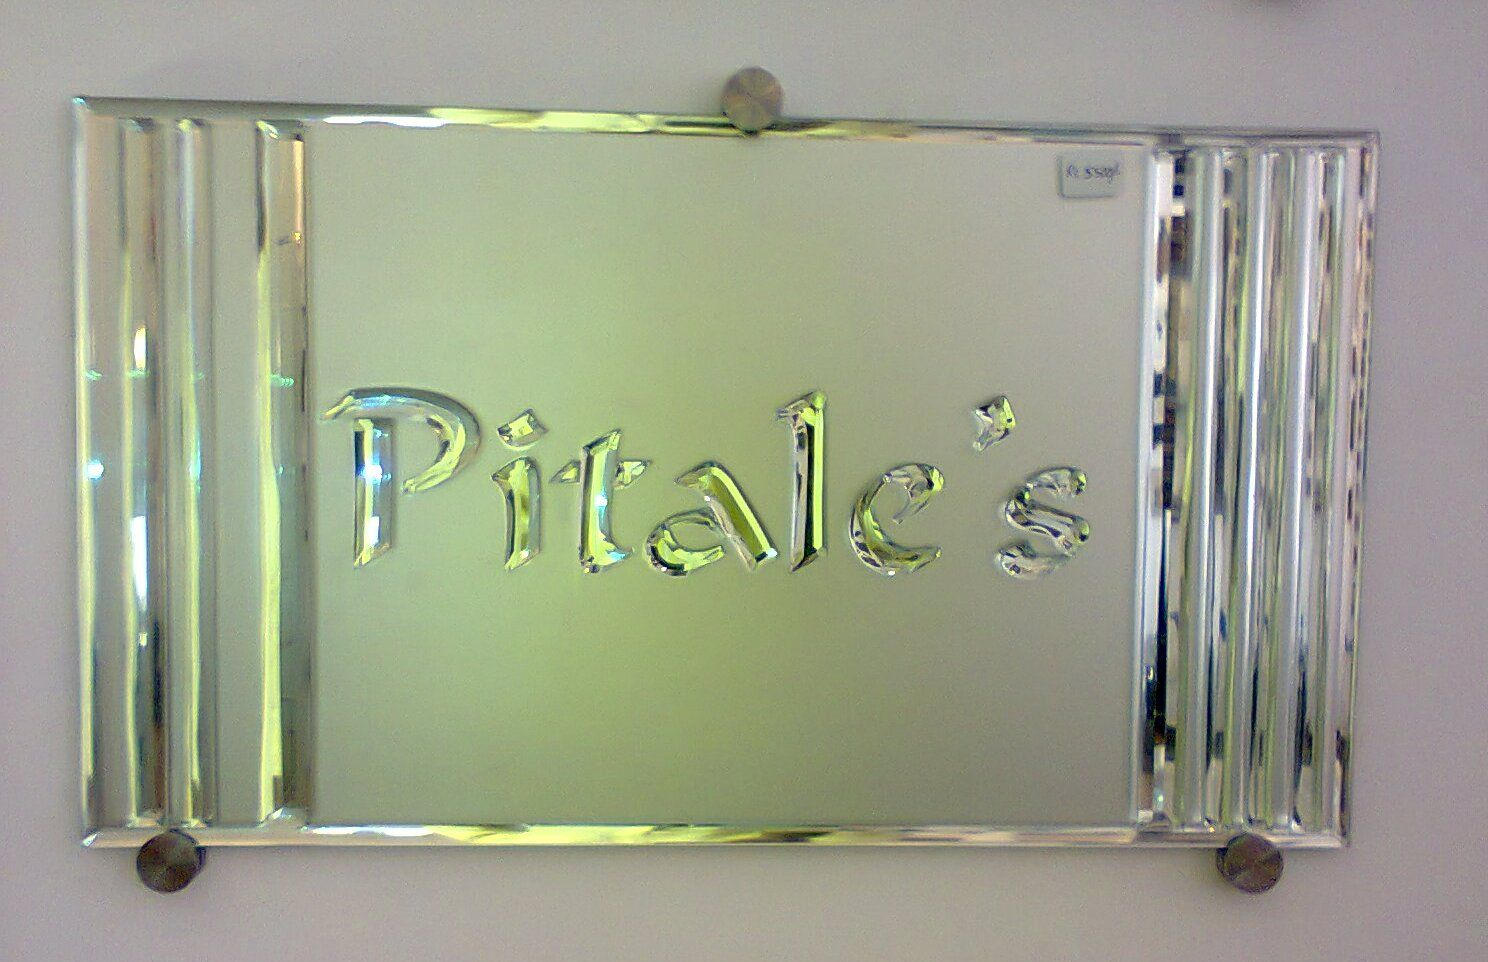 Glass Name Plate Design Modern Art Name Plate Design Plates